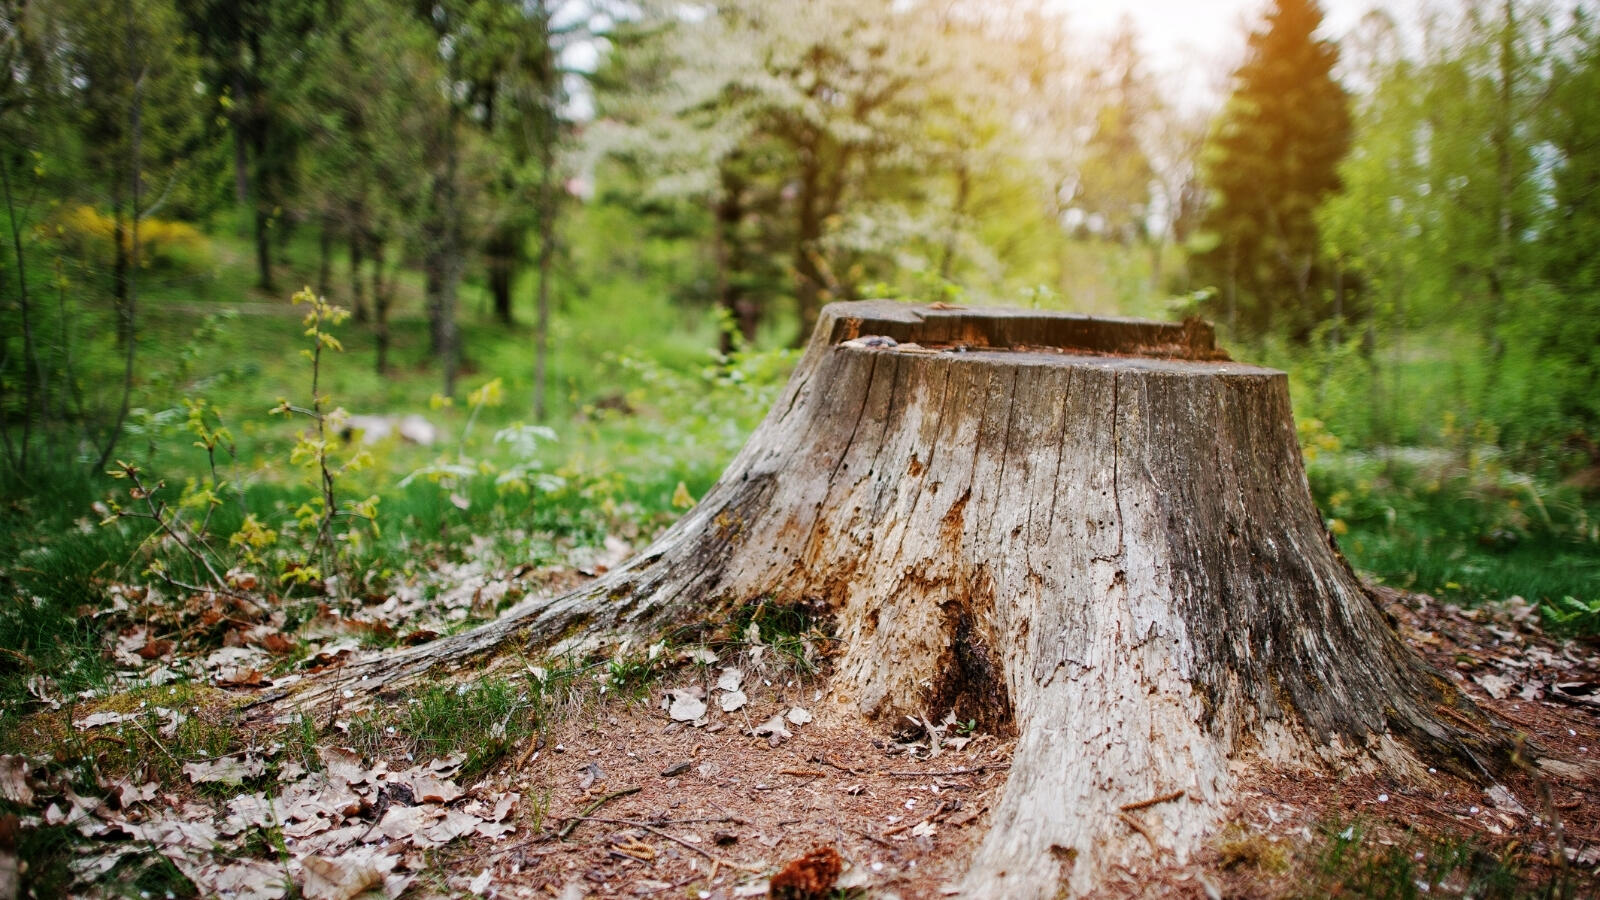 What to do with a tree stump in your garden - This glorious life